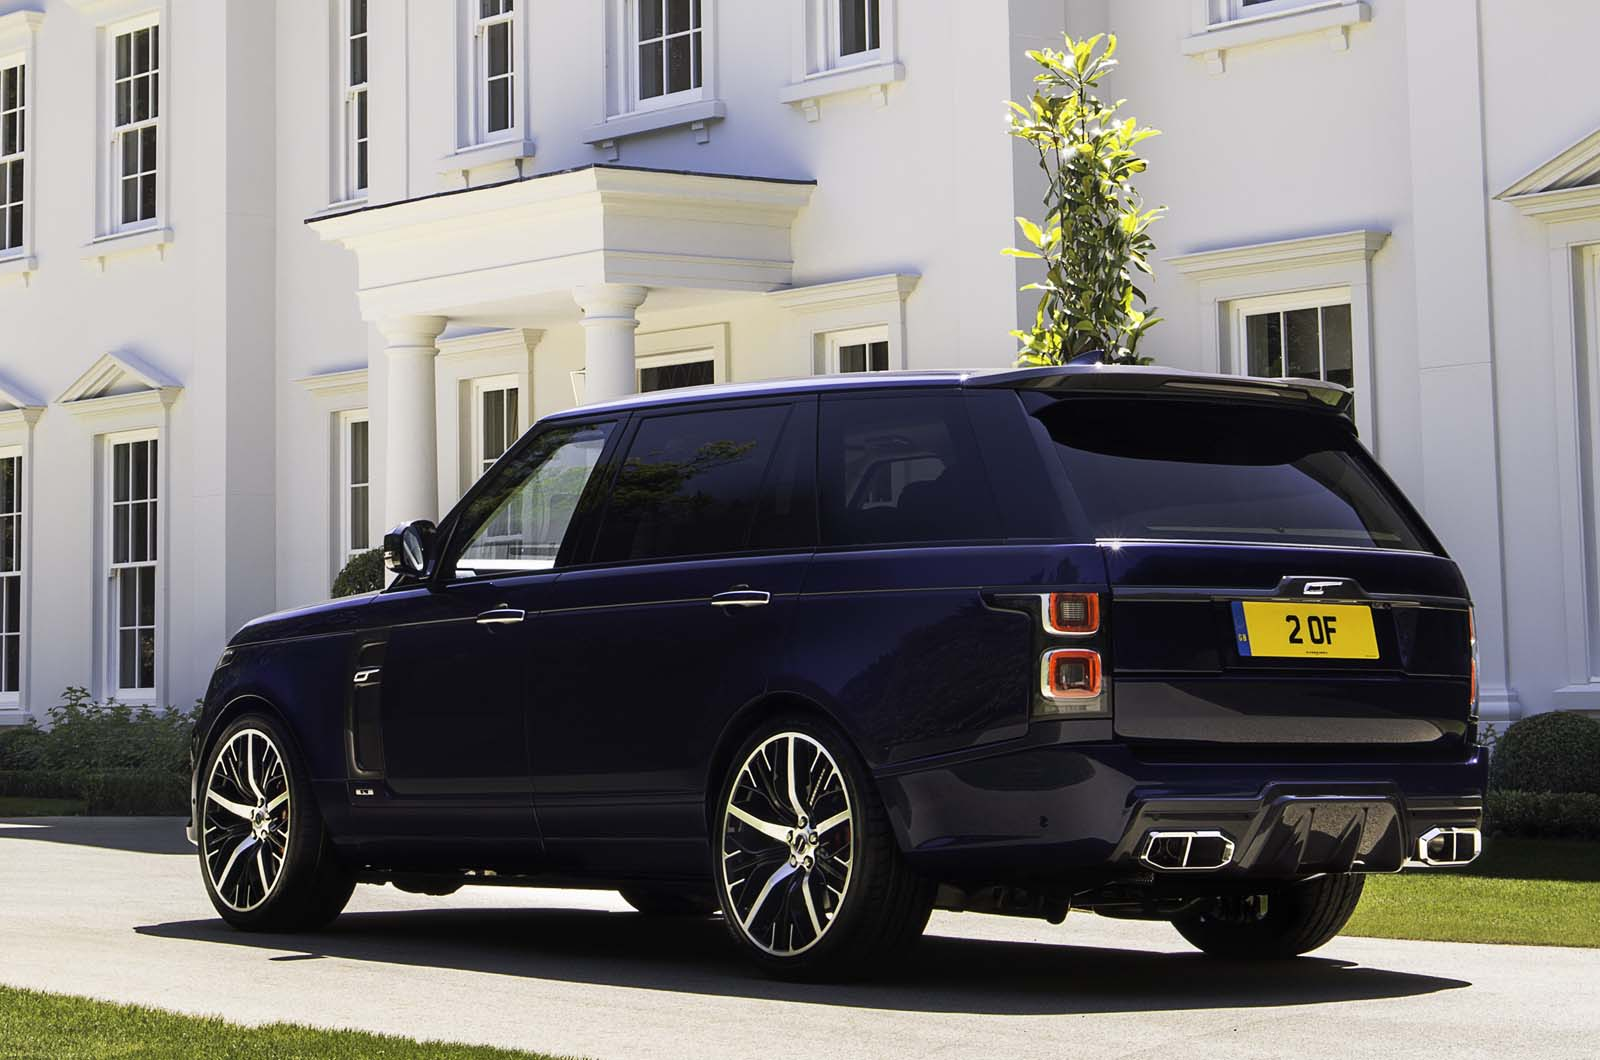 New Overfinch Range Rover Adds Carbonfibre And Ostrich Upholstery